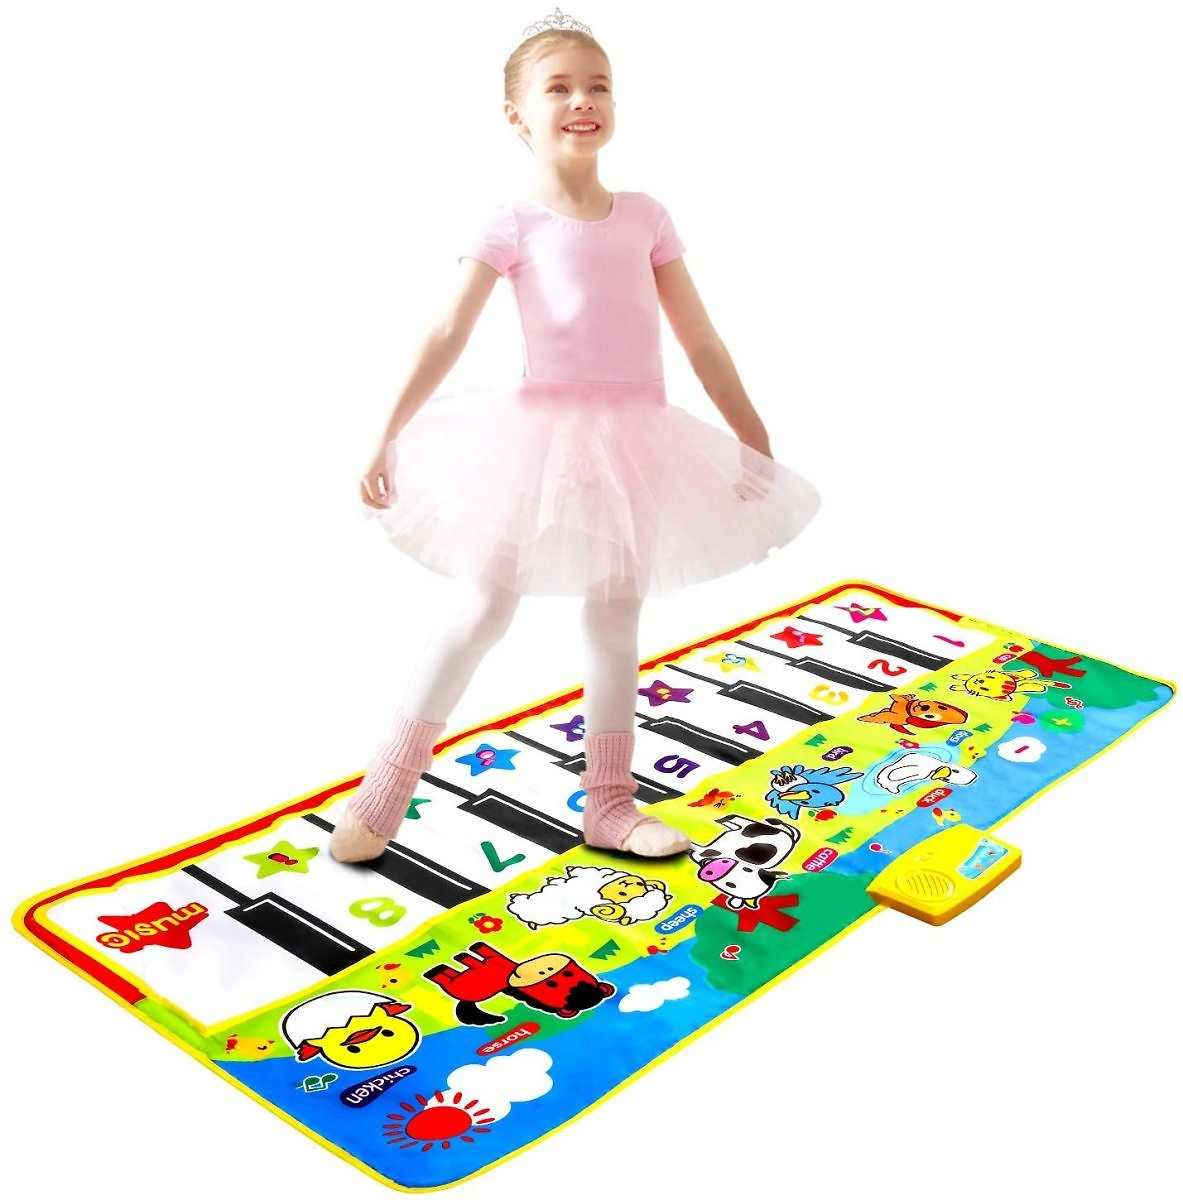 M SANMERSEN Piano Mat 53'' X 23'' Piano Keyboard Play Mat Dance Mat Electronic Music Piano Mat Early Education Toys Gift for Boys Girls Kids Ages 3-6